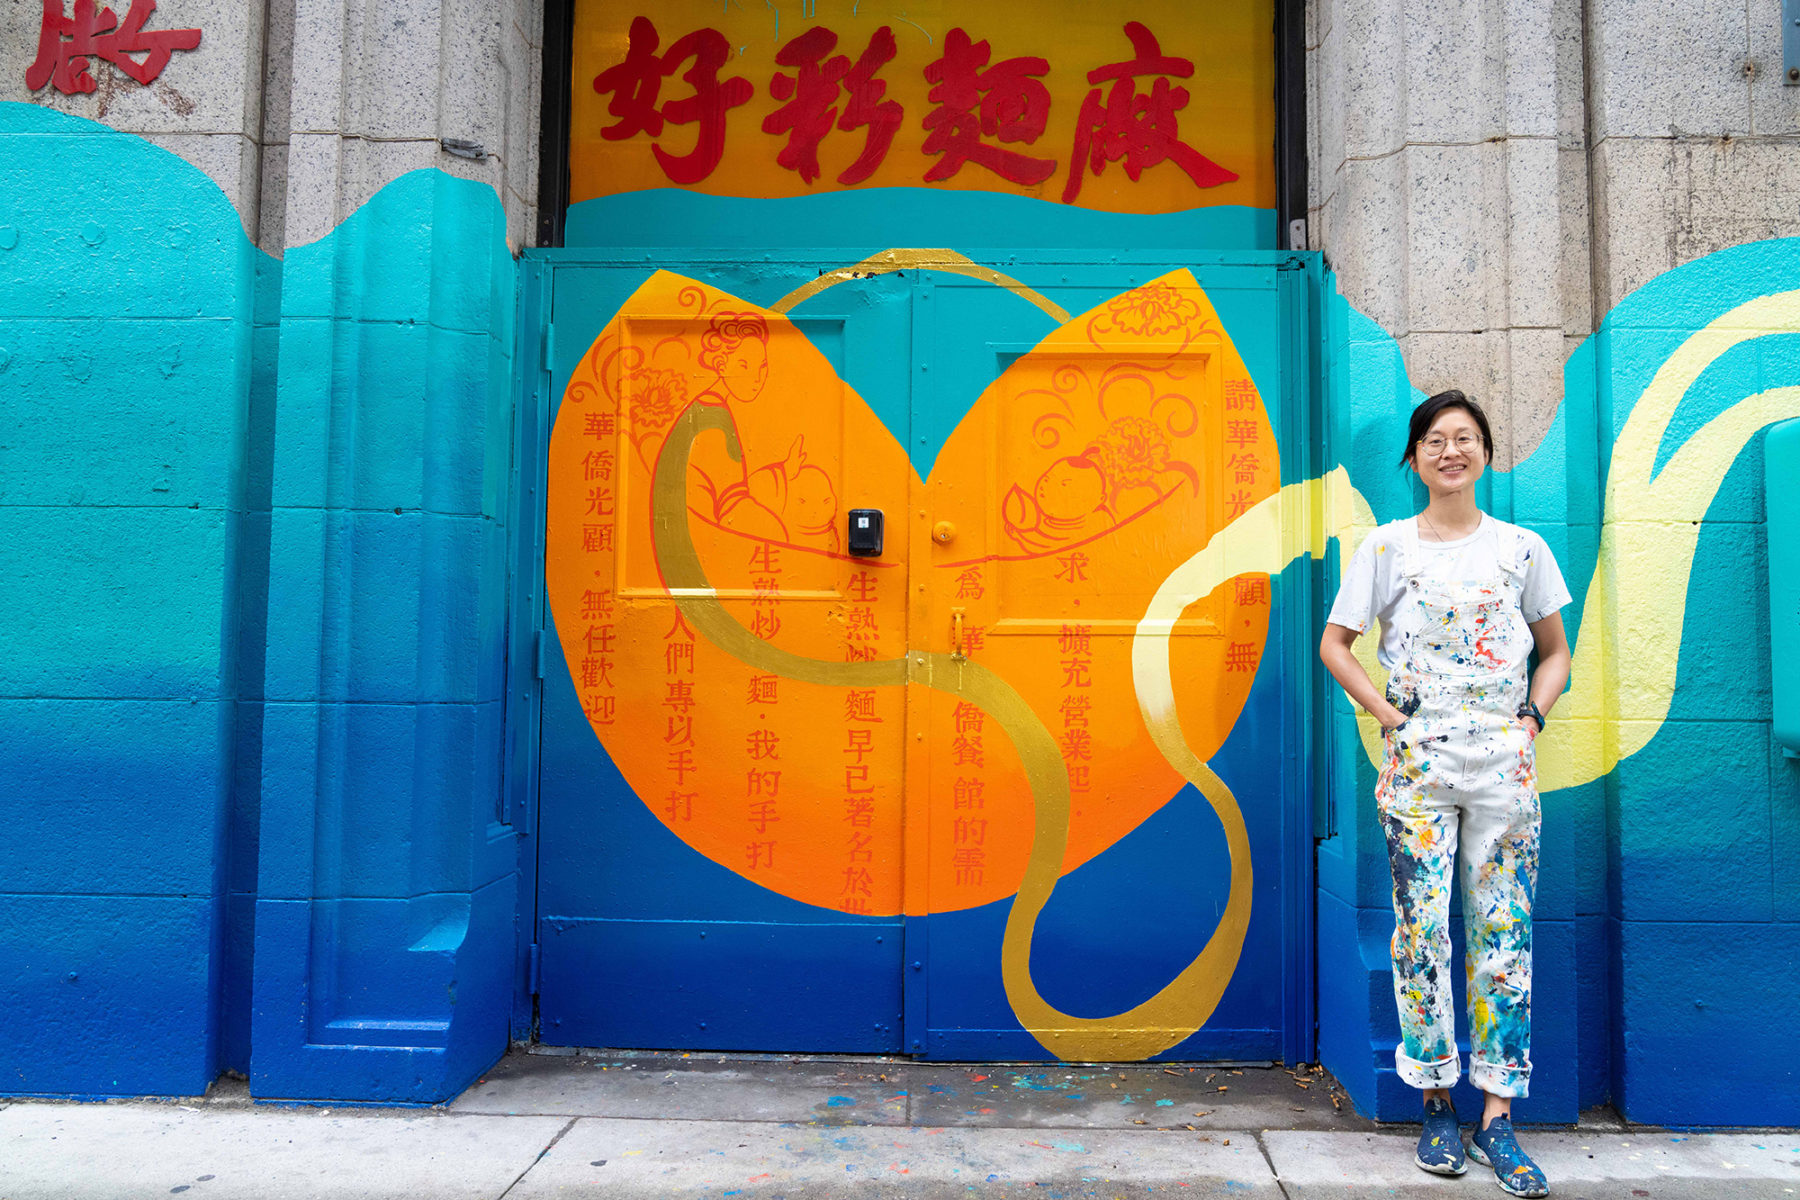 Artist stands by vibrant colored mural painted over doors